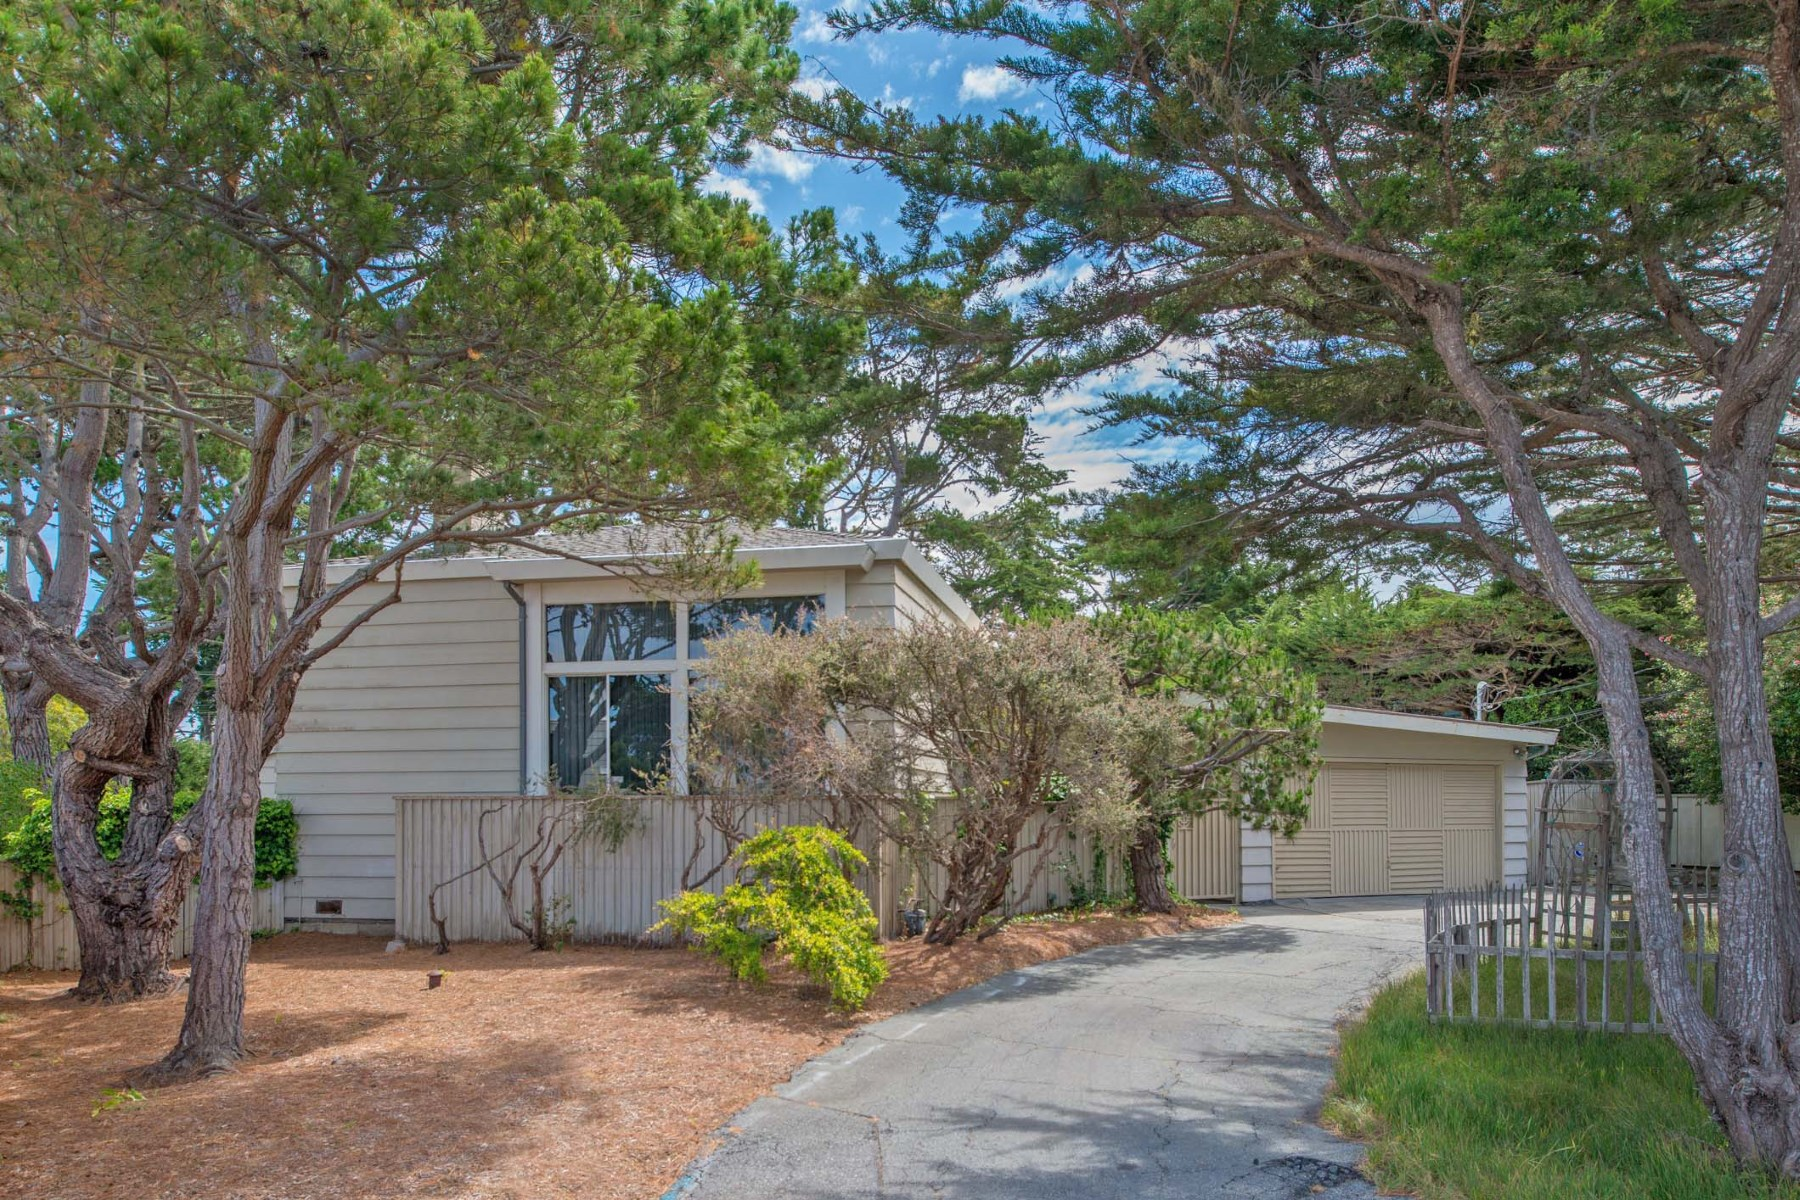 Single Family Home for Sale at Classic Vintage Beach House 971 Customs Road Pebble Beach, California, 93953 United States